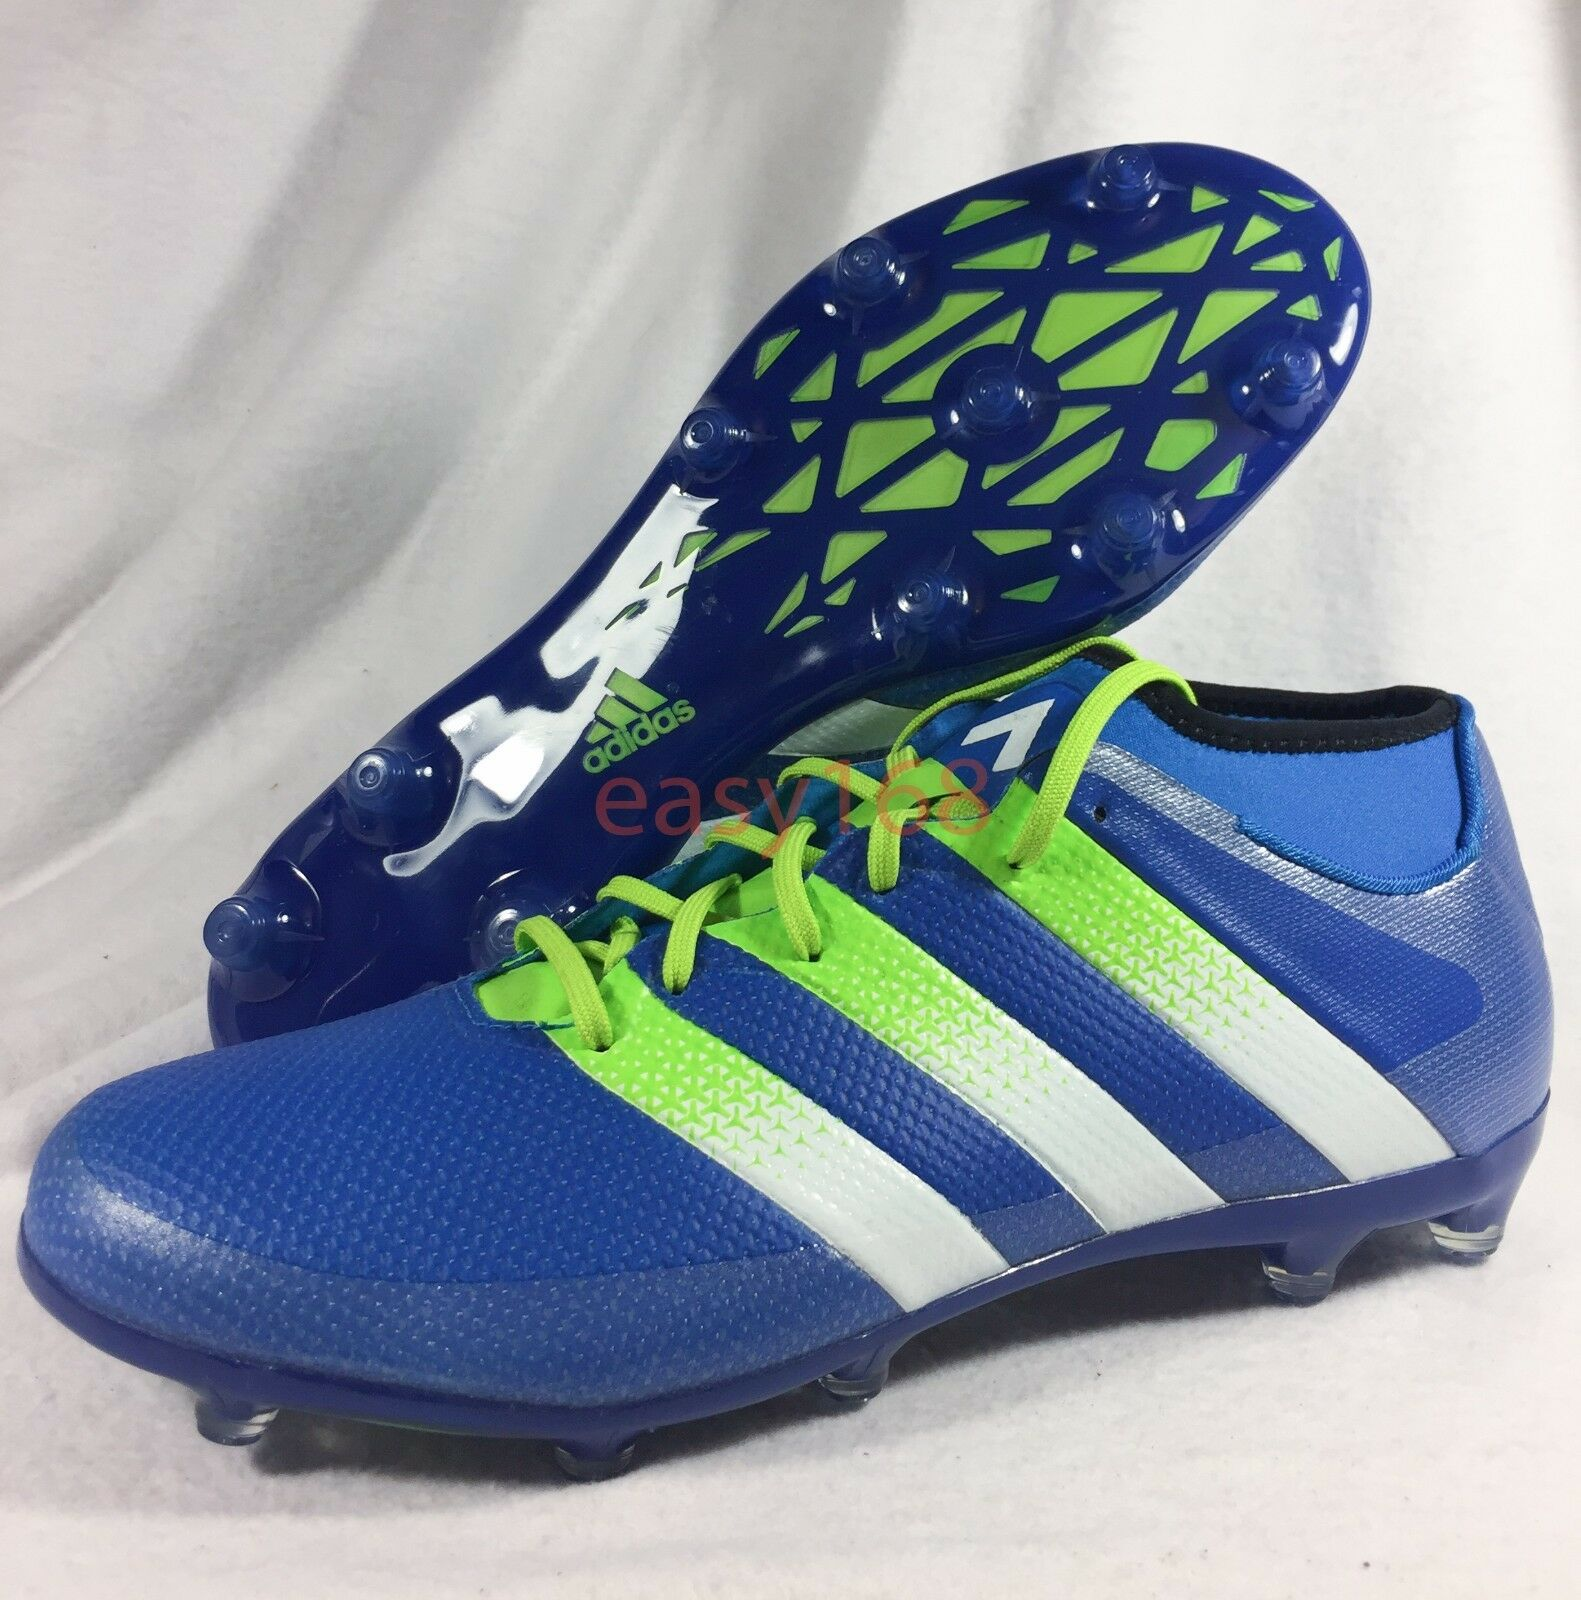 NEW ADIDAS Ace 16.2 Primemesh FG AG Mens Soccer Cleats bluee White AQ2553 Sz 12